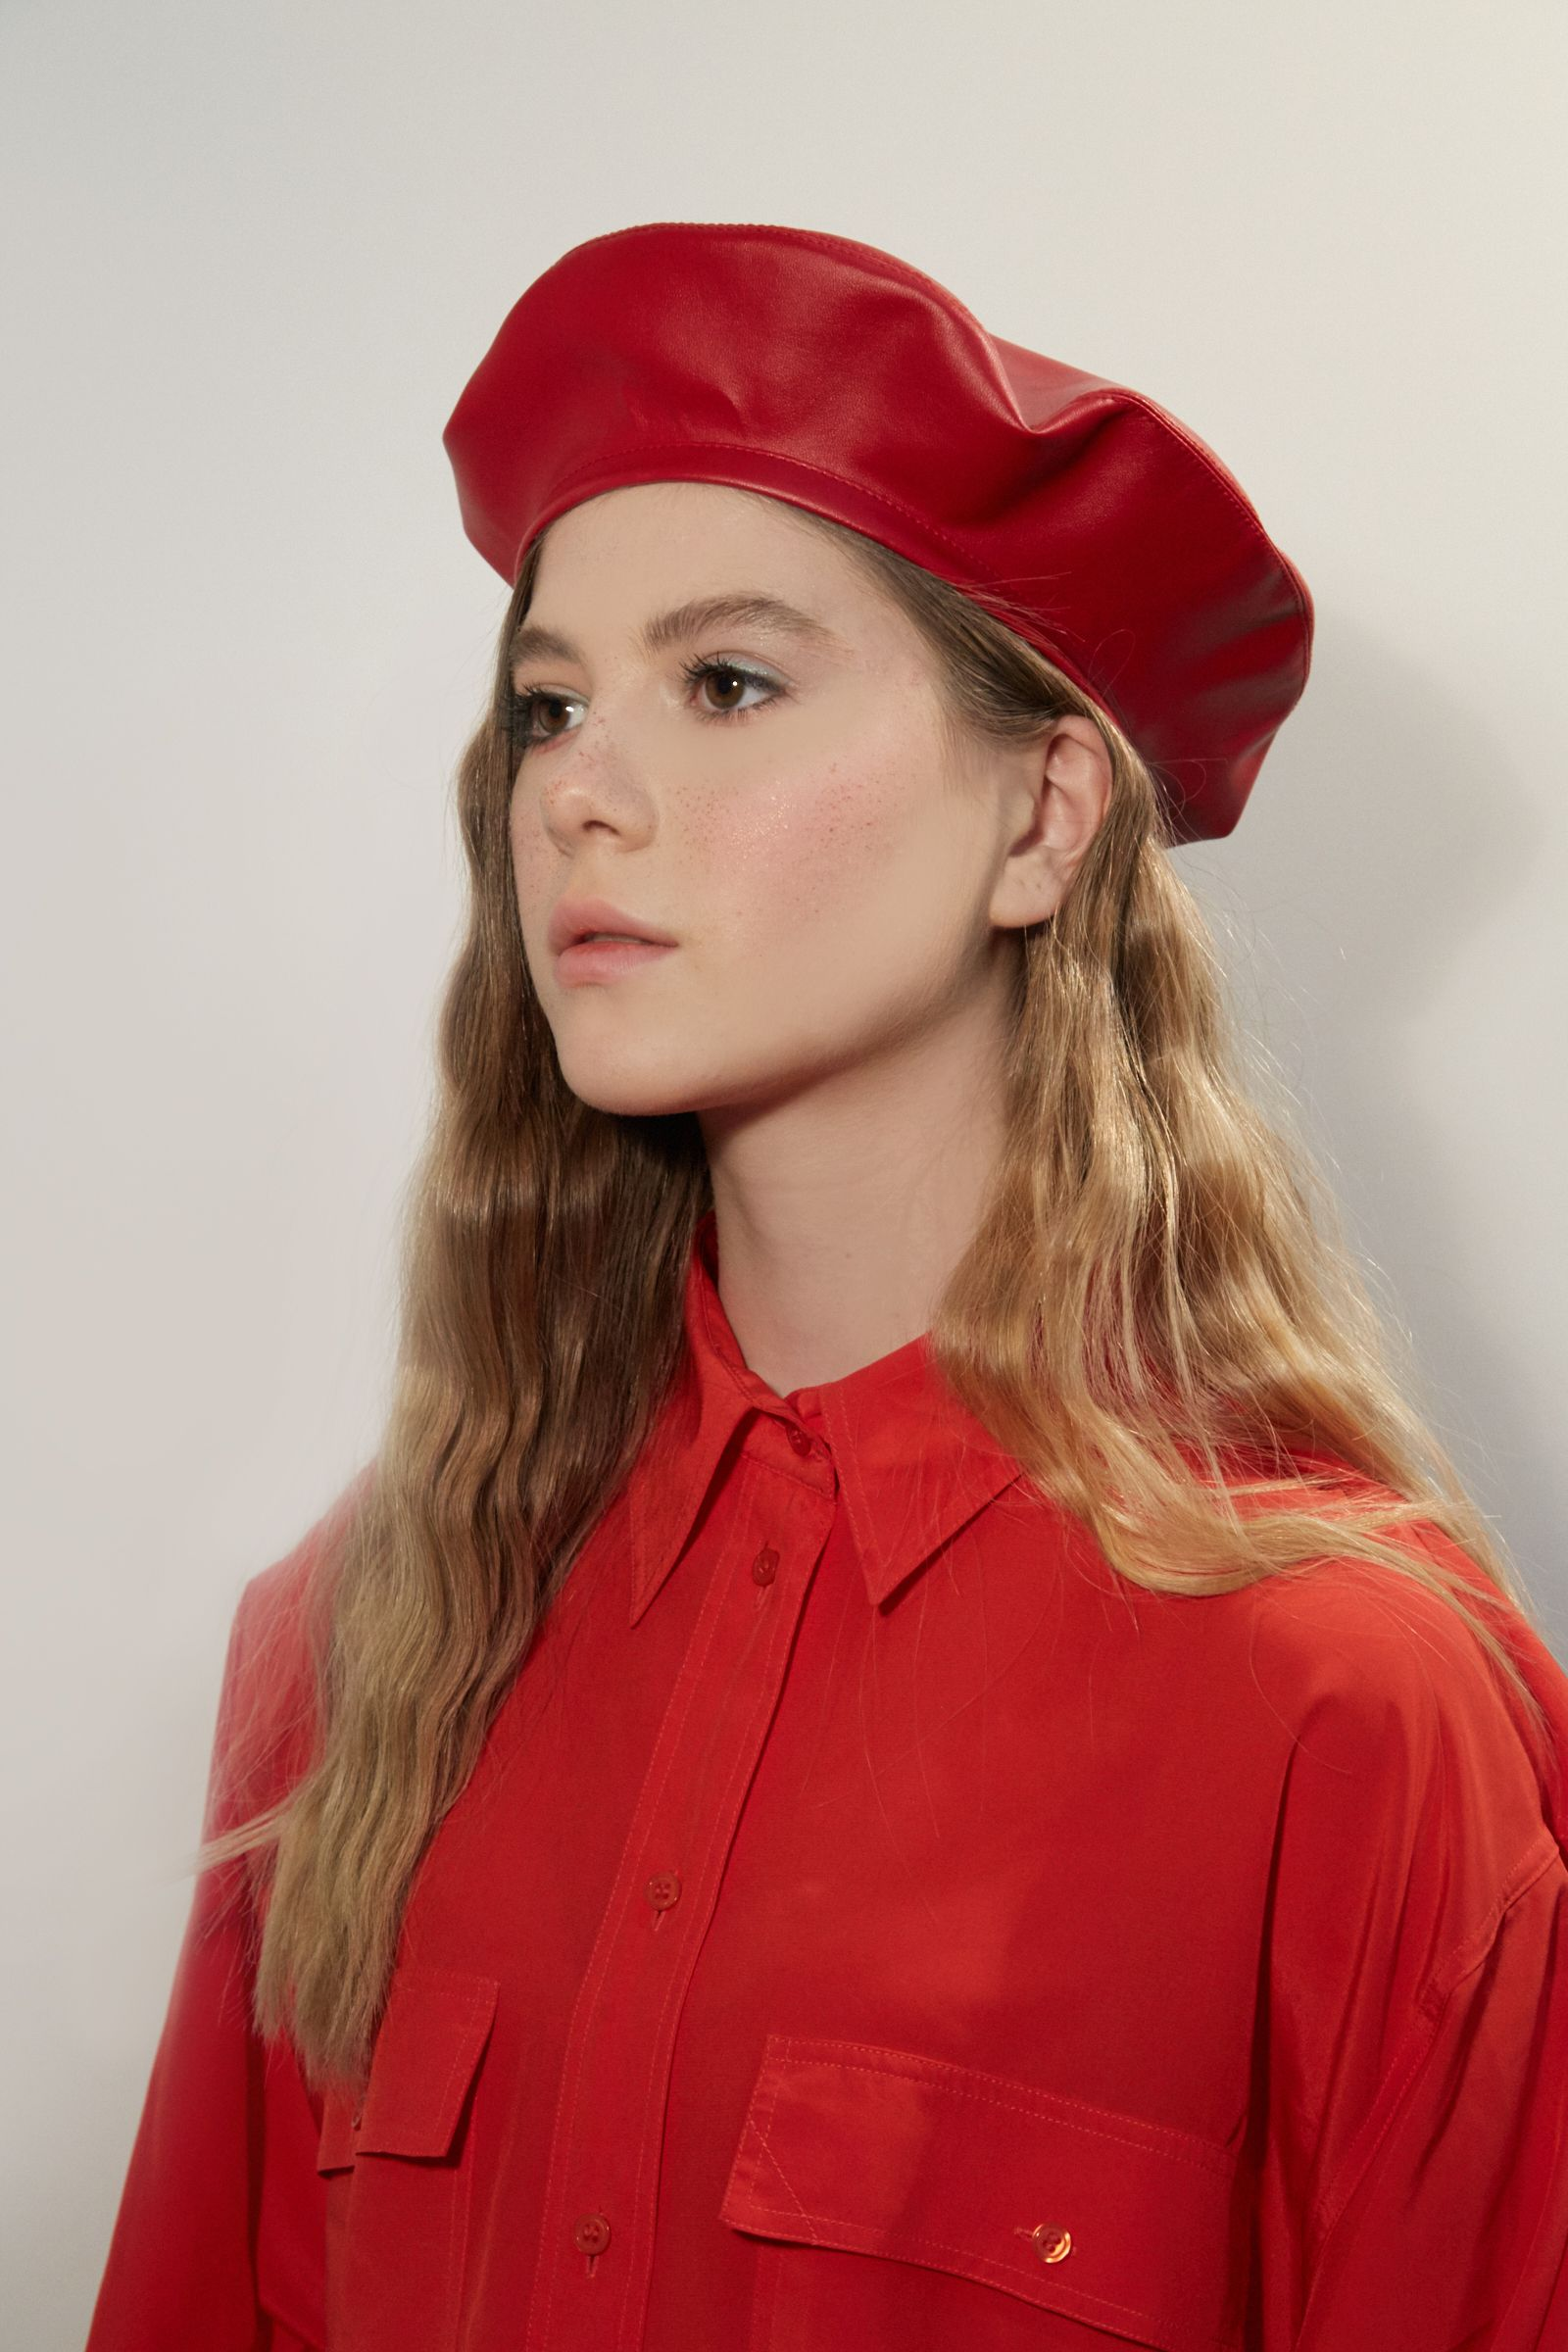 c97f9925f2b4d Red eco leather beret